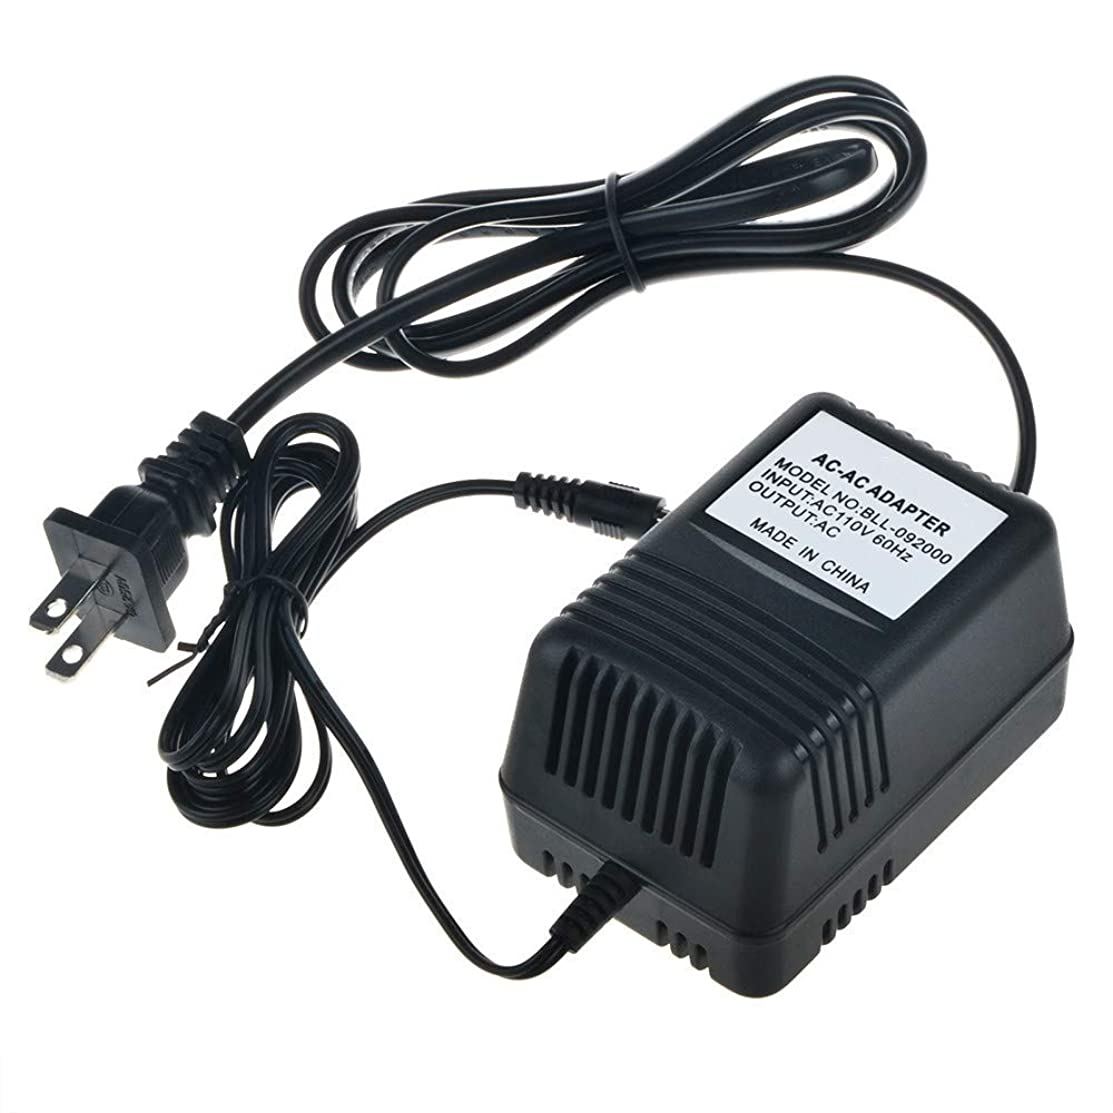 SLLEA AC/AC Adapter for FP AD3515-09-100 Fits Royal Digital Postal Scale Class 2 Power Supply Cord Cable Wall Home Battery Charger